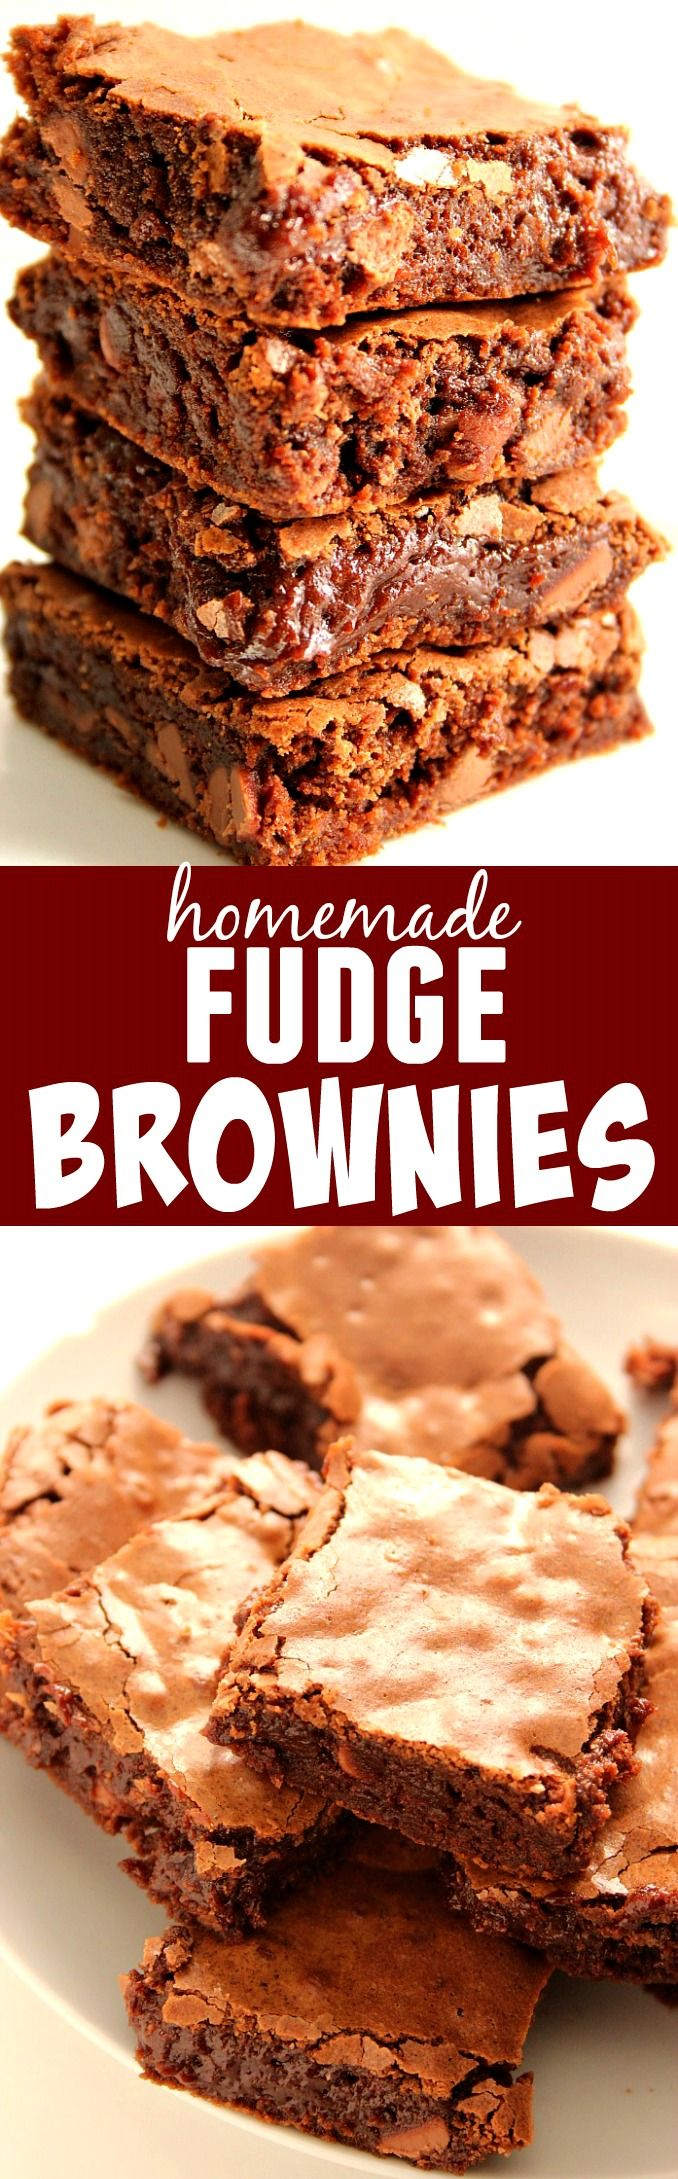 Homemade Fudge Brownies Recipe - the one and only recipe for fudgy brownies you will ever need! Learn the simple trick to get the flaky, crunchy top!